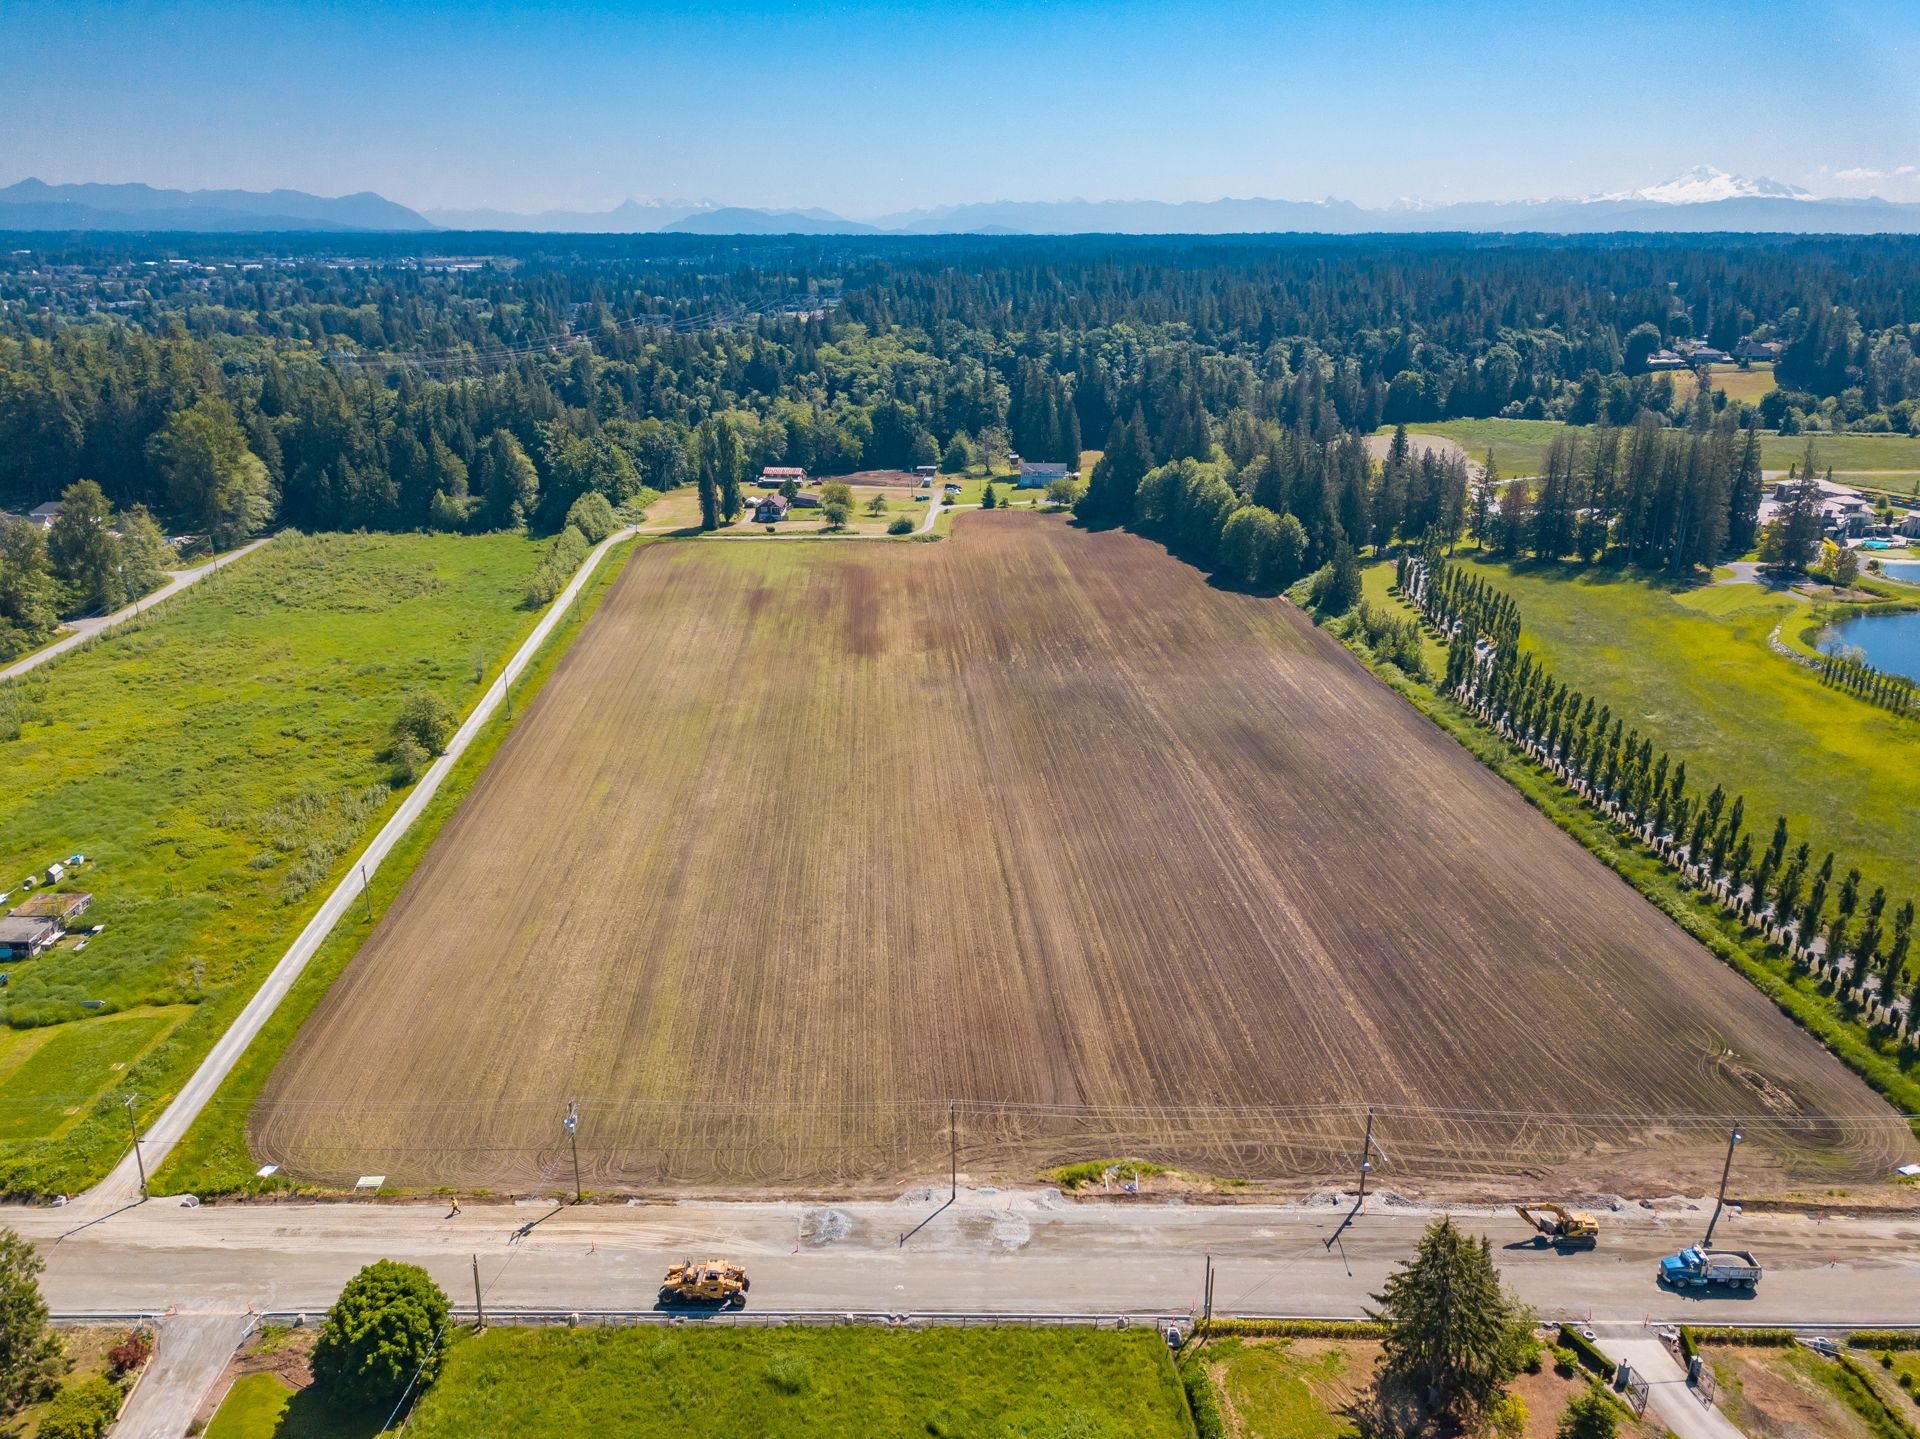 Main Photo: 4718 192 Street in Surrey: Serpentine House for sale (Cloverdale)  : MLS®# R2471895